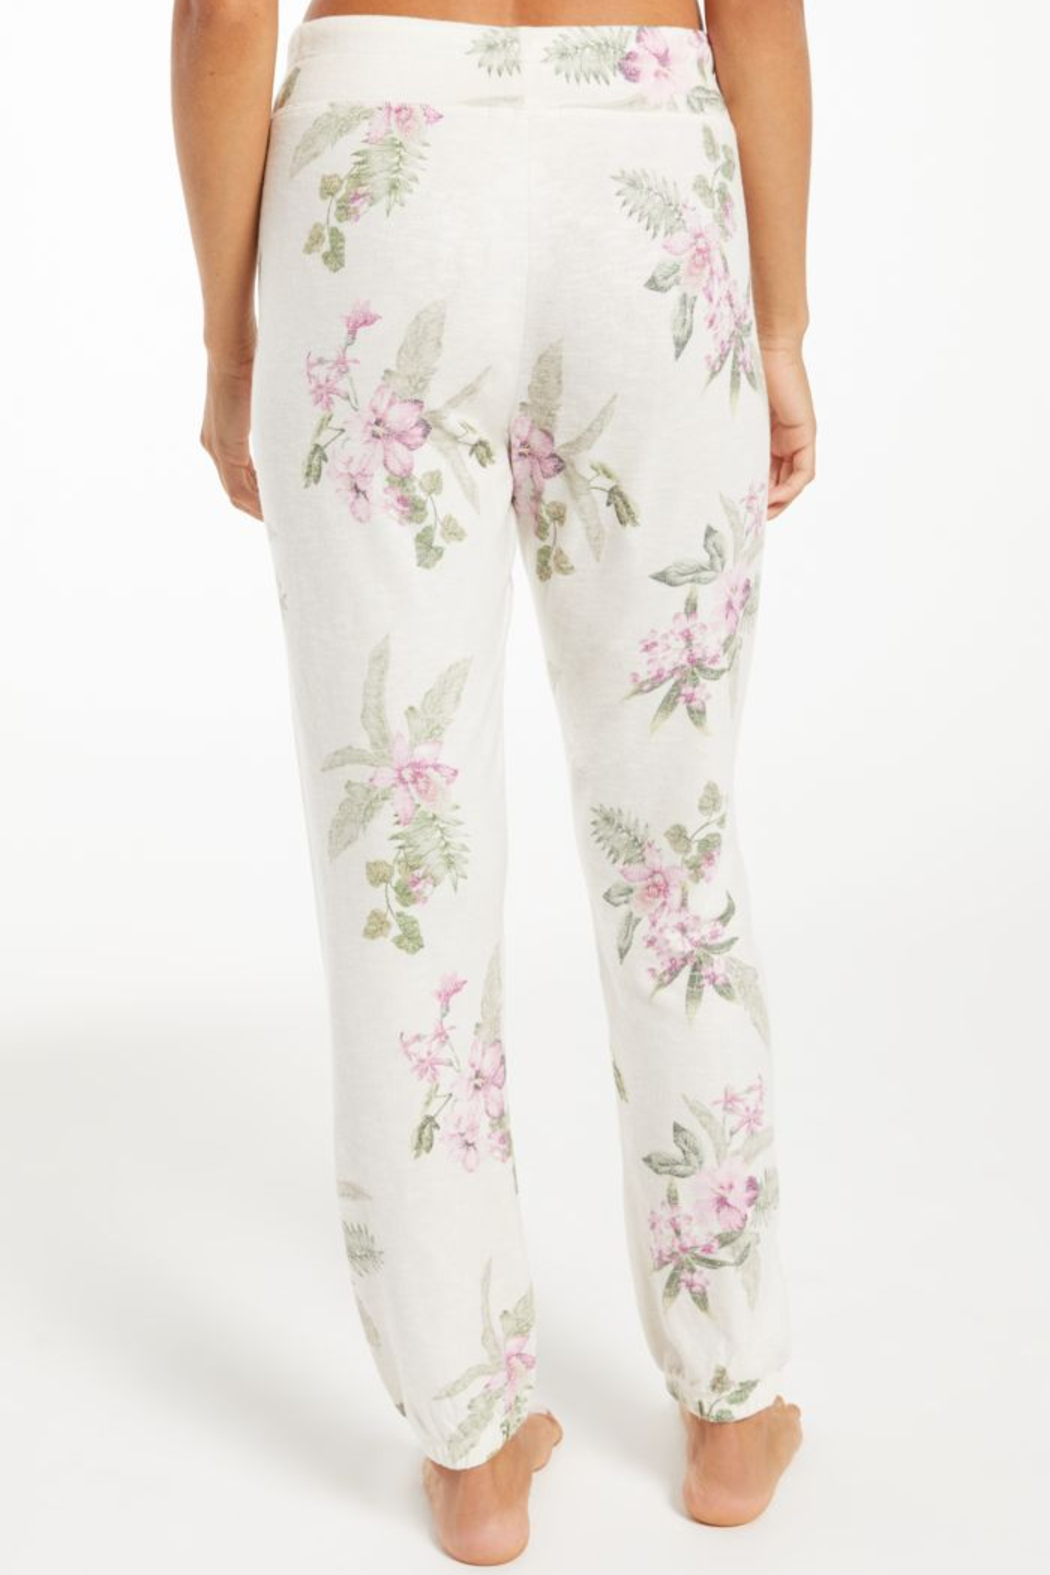 z supply Ava Spring Floral Jogger - Side Cropped Image